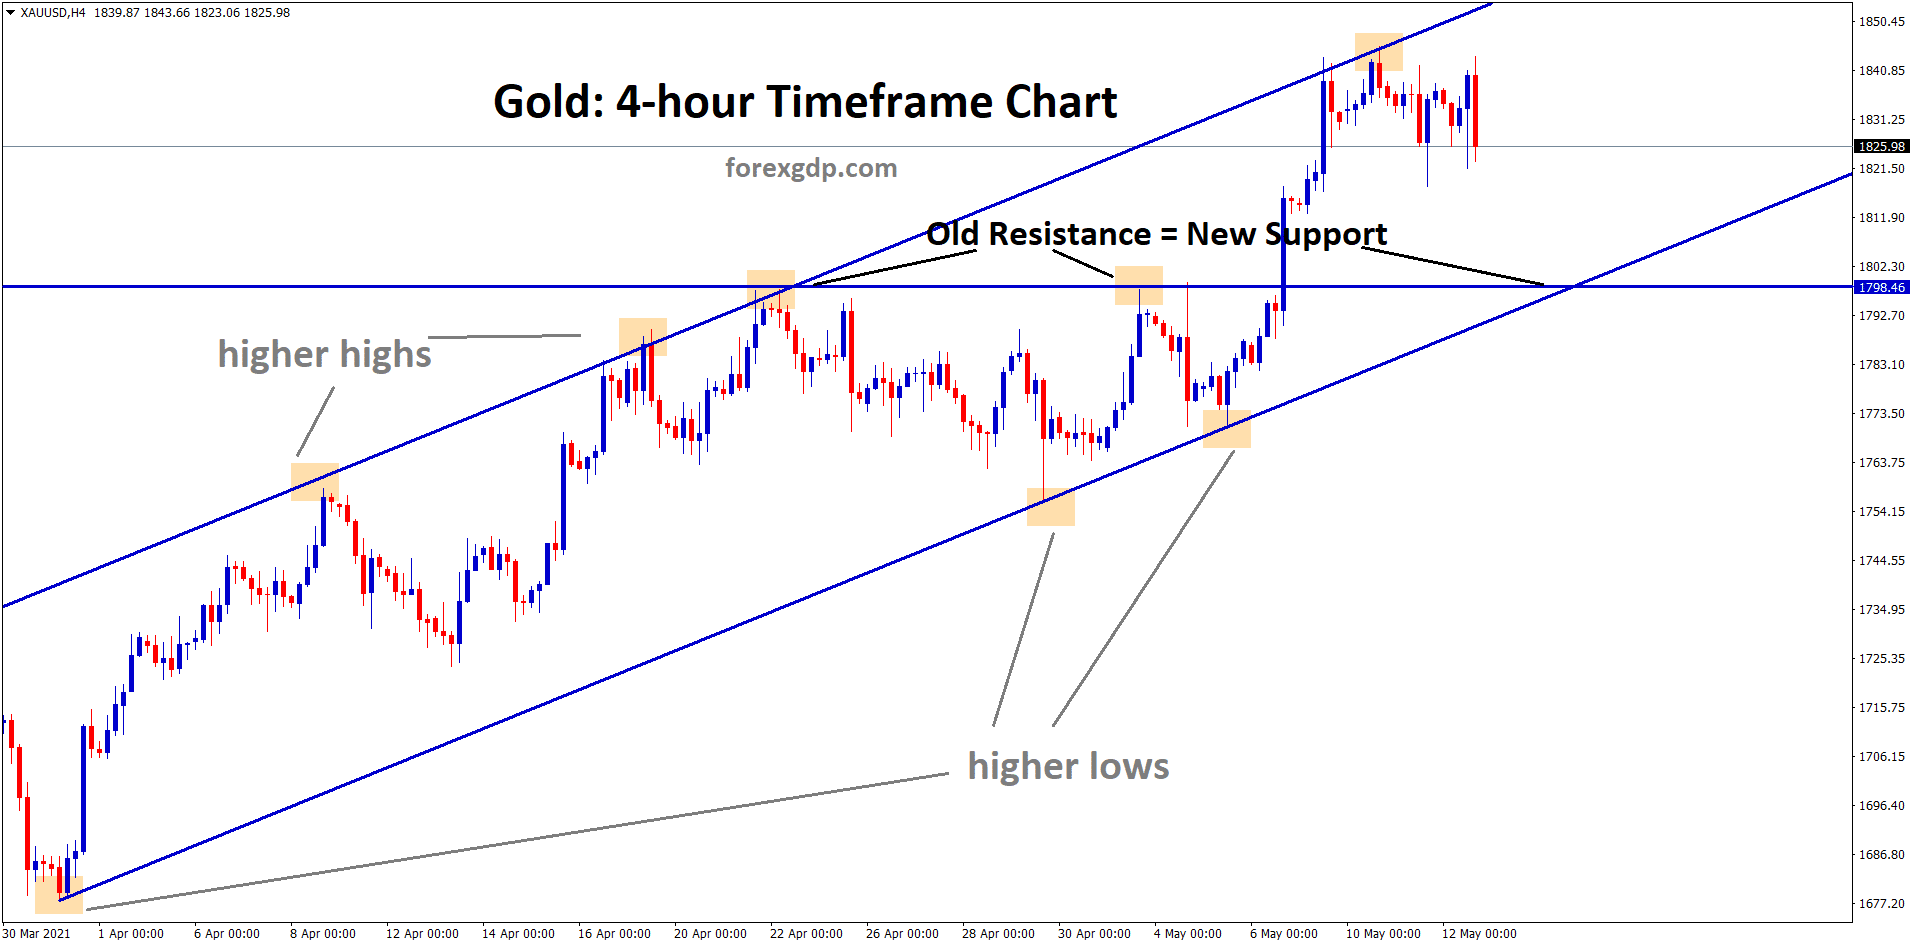 Gold is moving in an upternd now trying to fall form the higher high zone if it falls it can fall to the old resistance which will act as a new support.